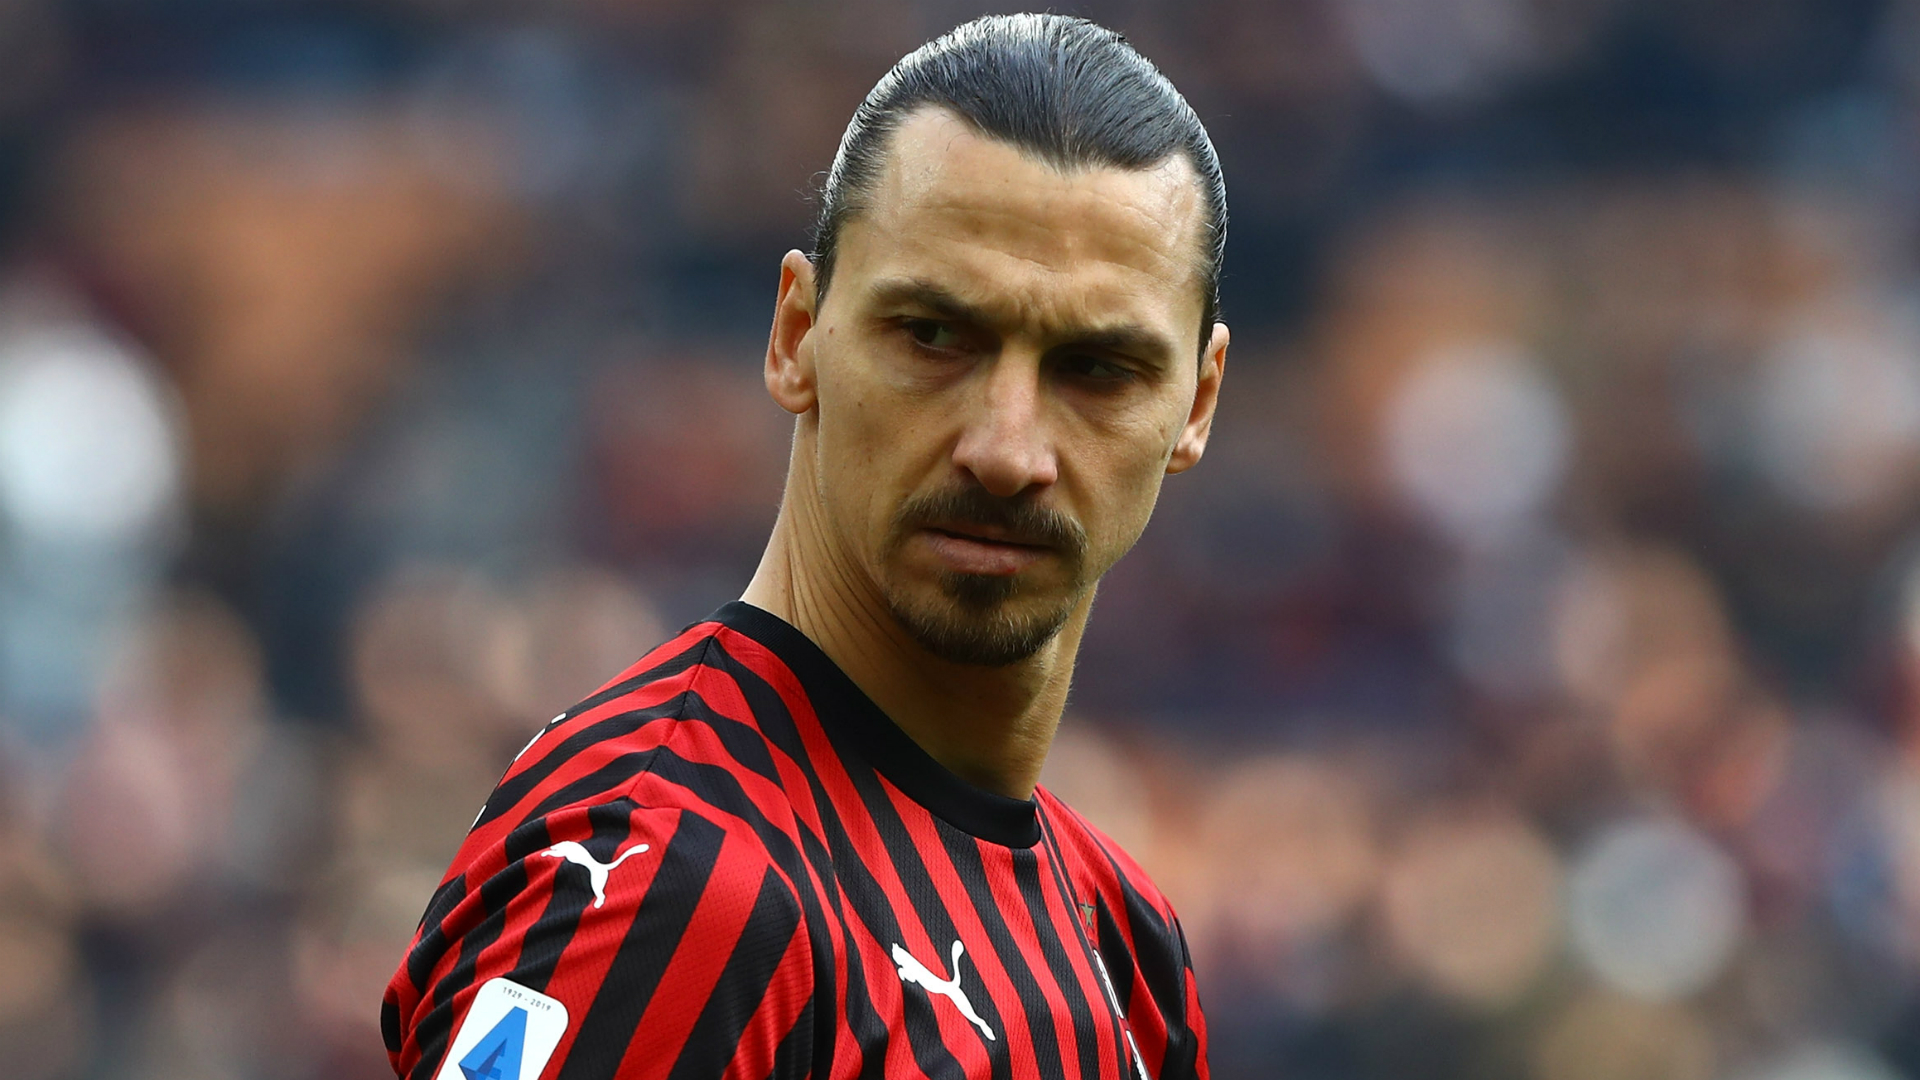 Ibrahimovic's AC Milan career may be over after sustaining injury in training